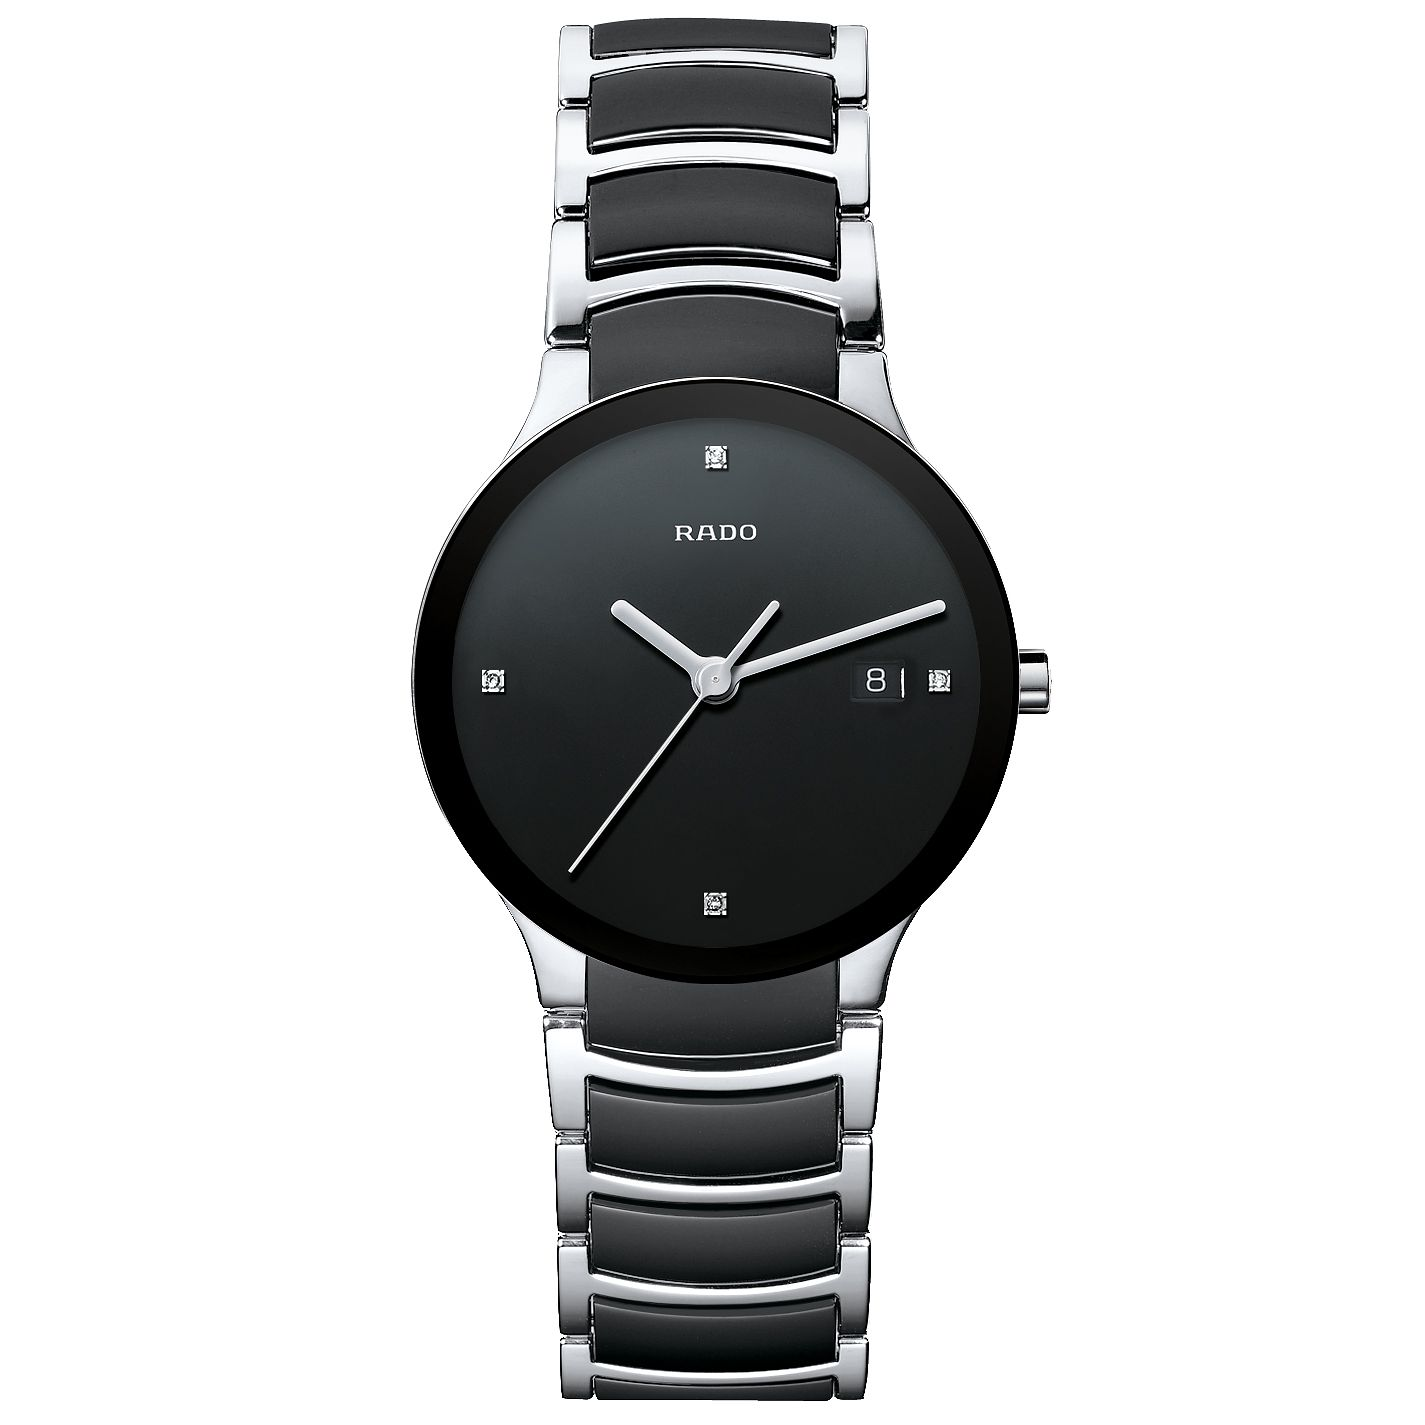 Rado Men's Black Ceramic Bracelet Watch - Product number 8712255